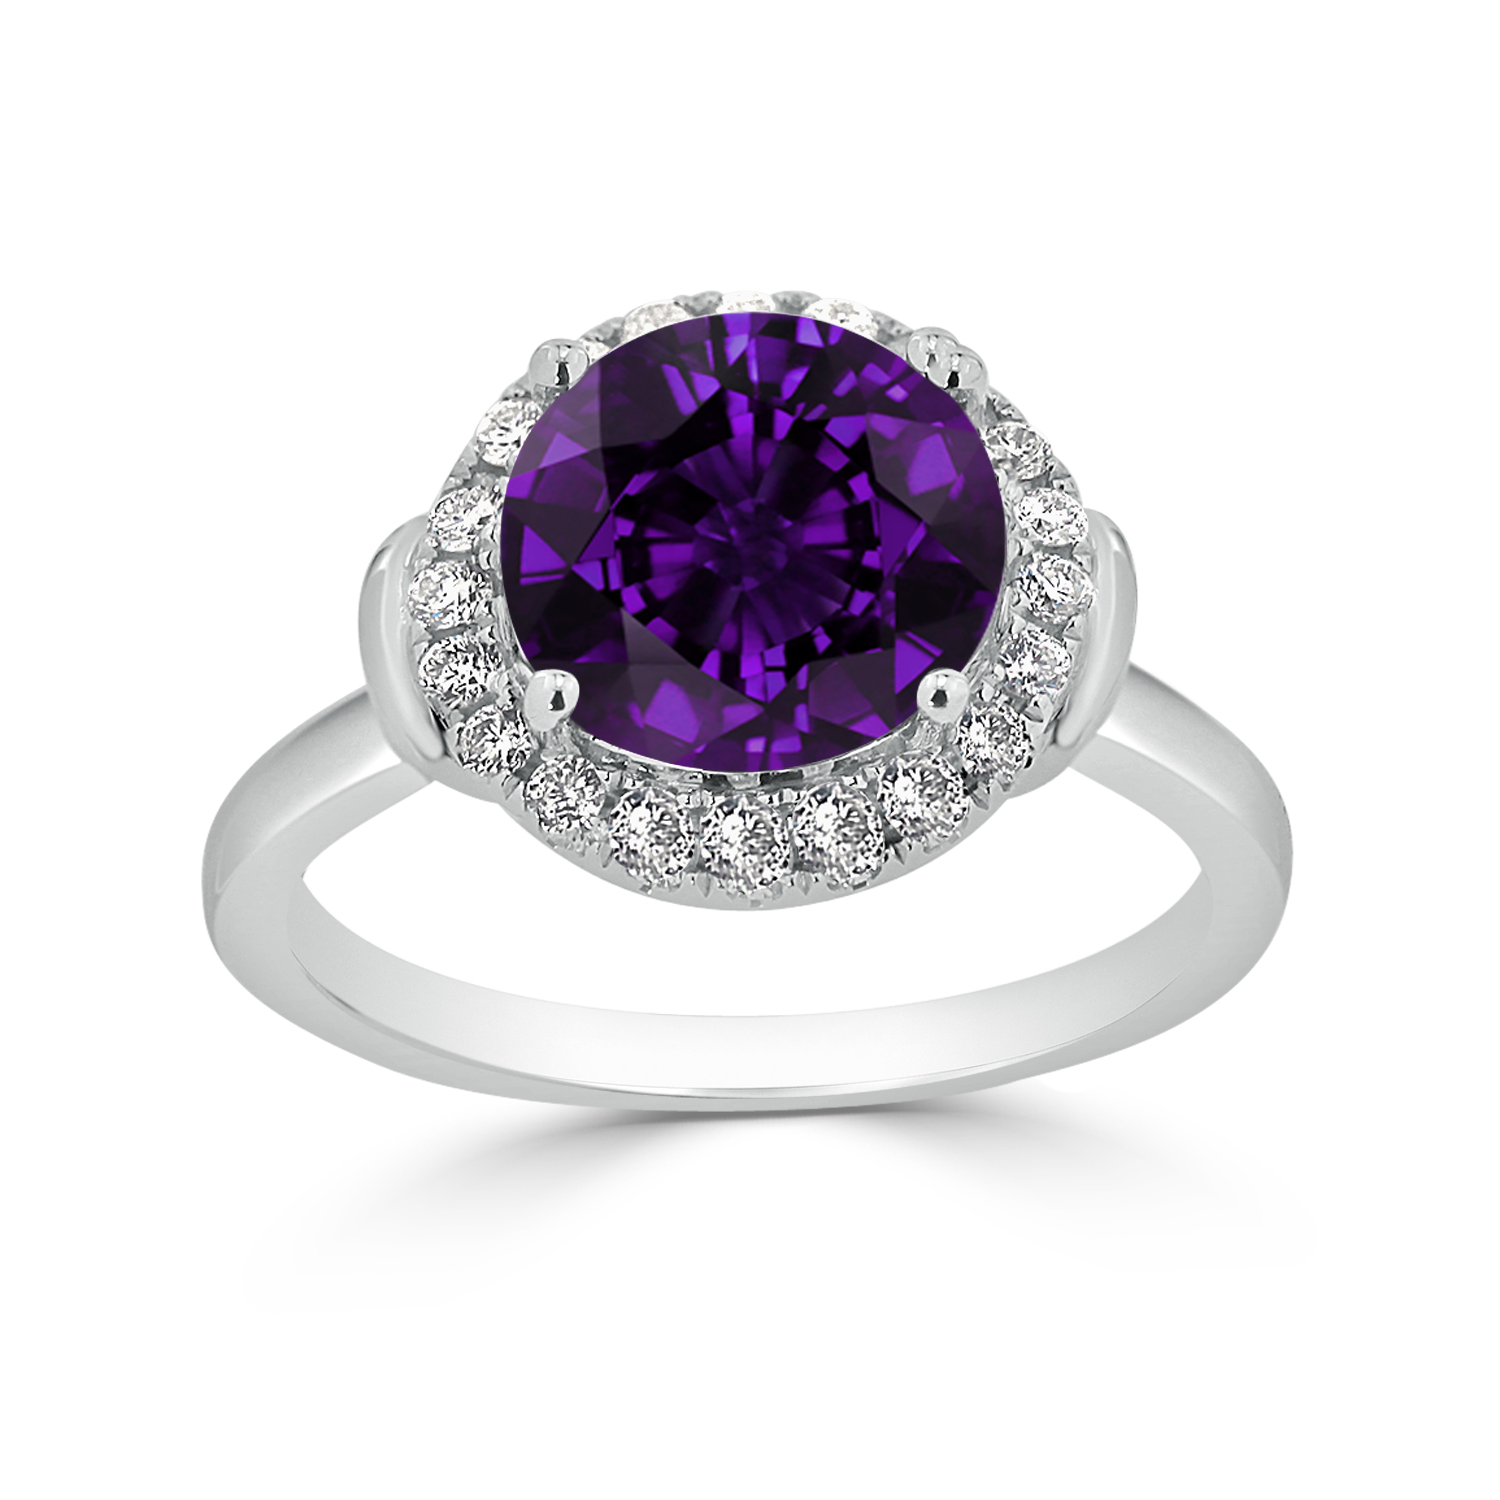 Halo Purple Amethyst Diamond Ring in 14K White Gold with 2.50 carat Round Purple Amethyst